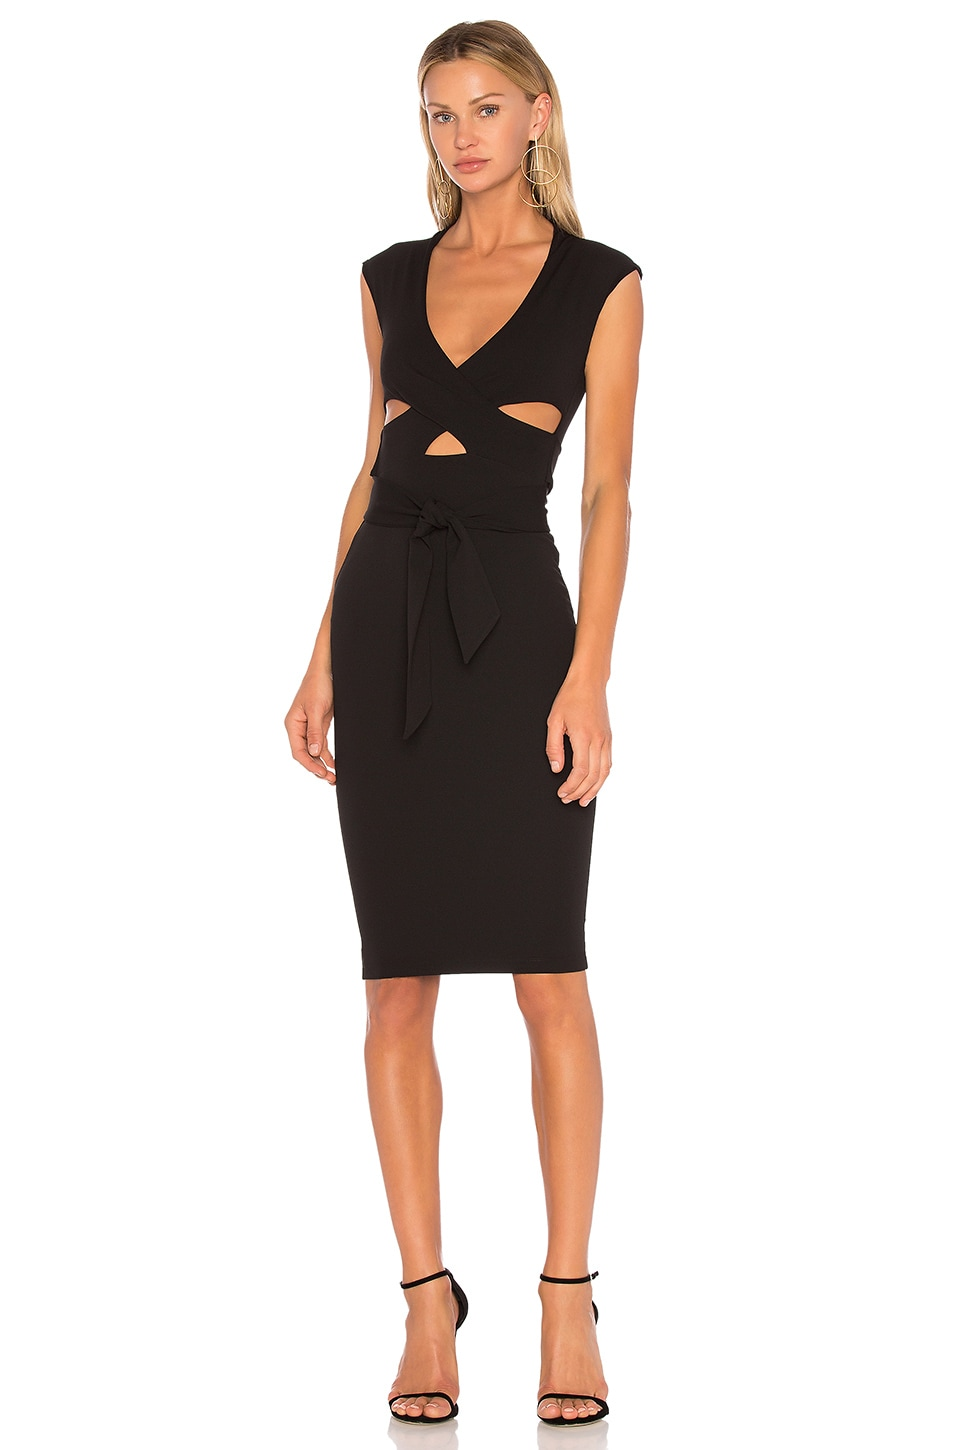 Nookie Miami Midi Dress in Black